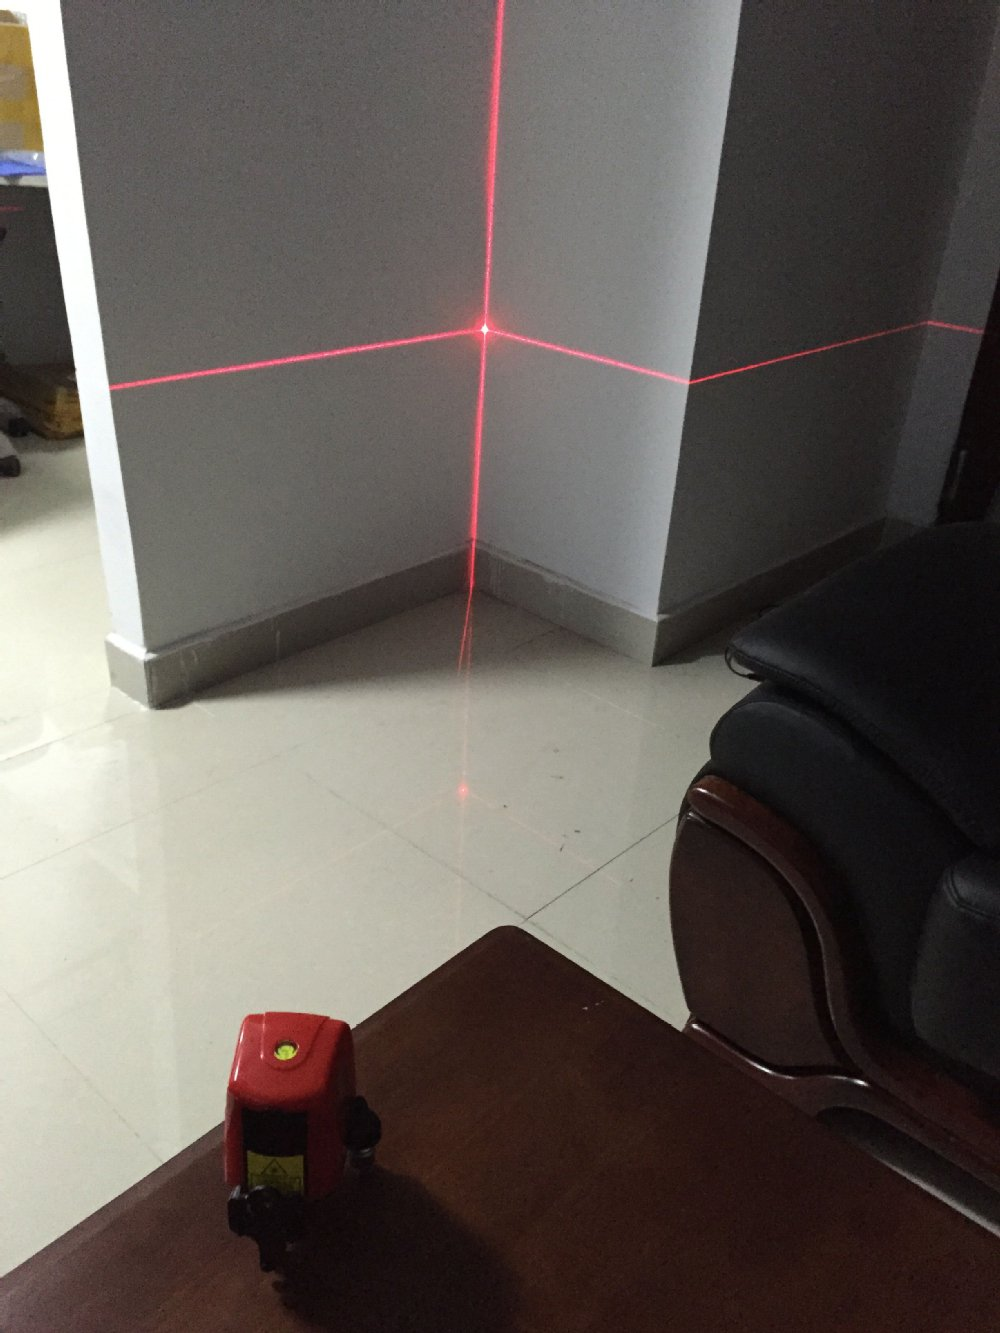 AK435 2 Lines 1 Point Cross Laser Level 360 Degree Self Leveling Indoor Outdoor